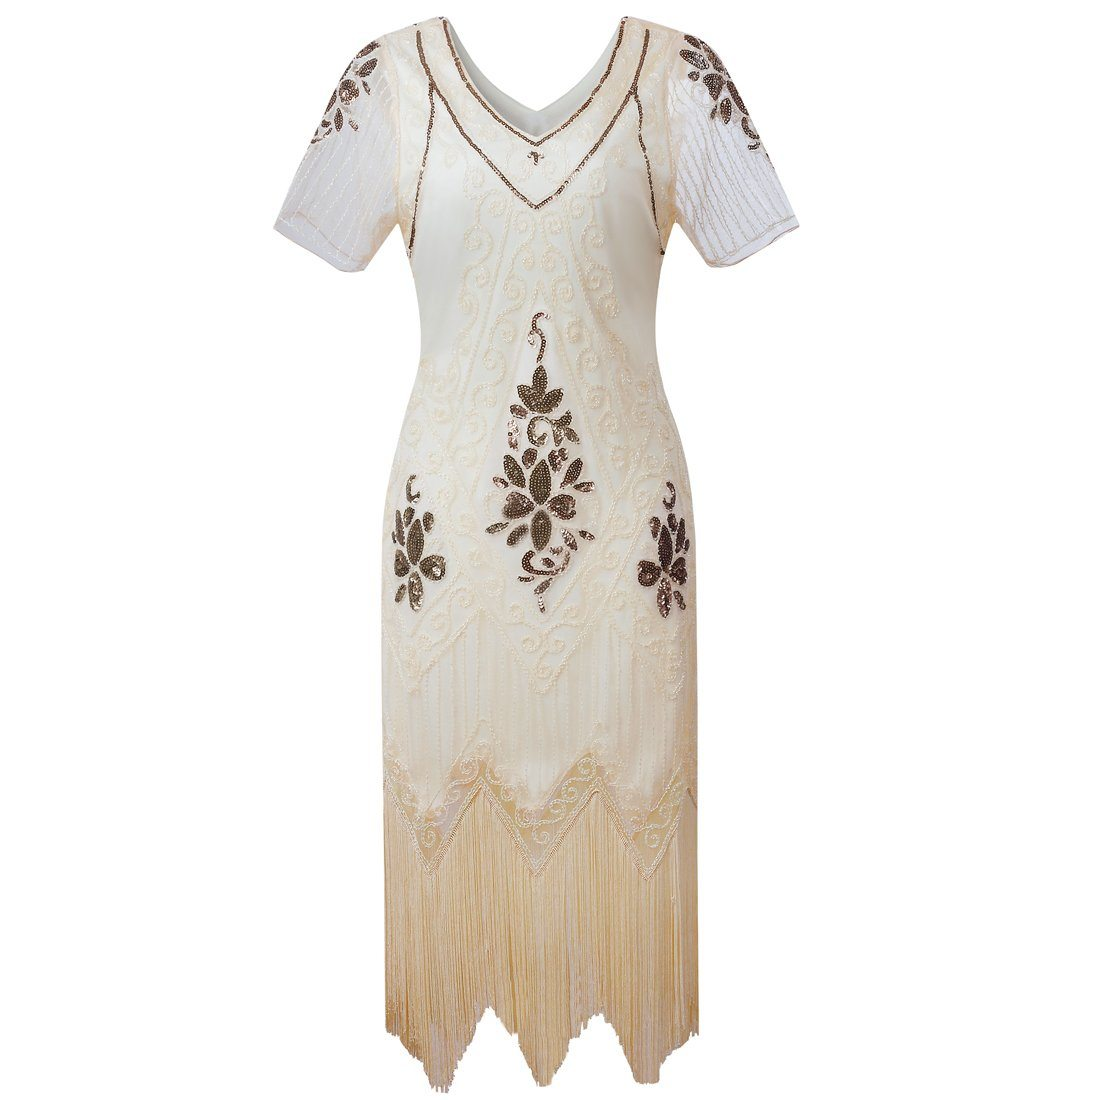 Ivory Gold Roaring Twenties Great Gatsby Flapper Dress Charleston 1920's Themed Birthday Party